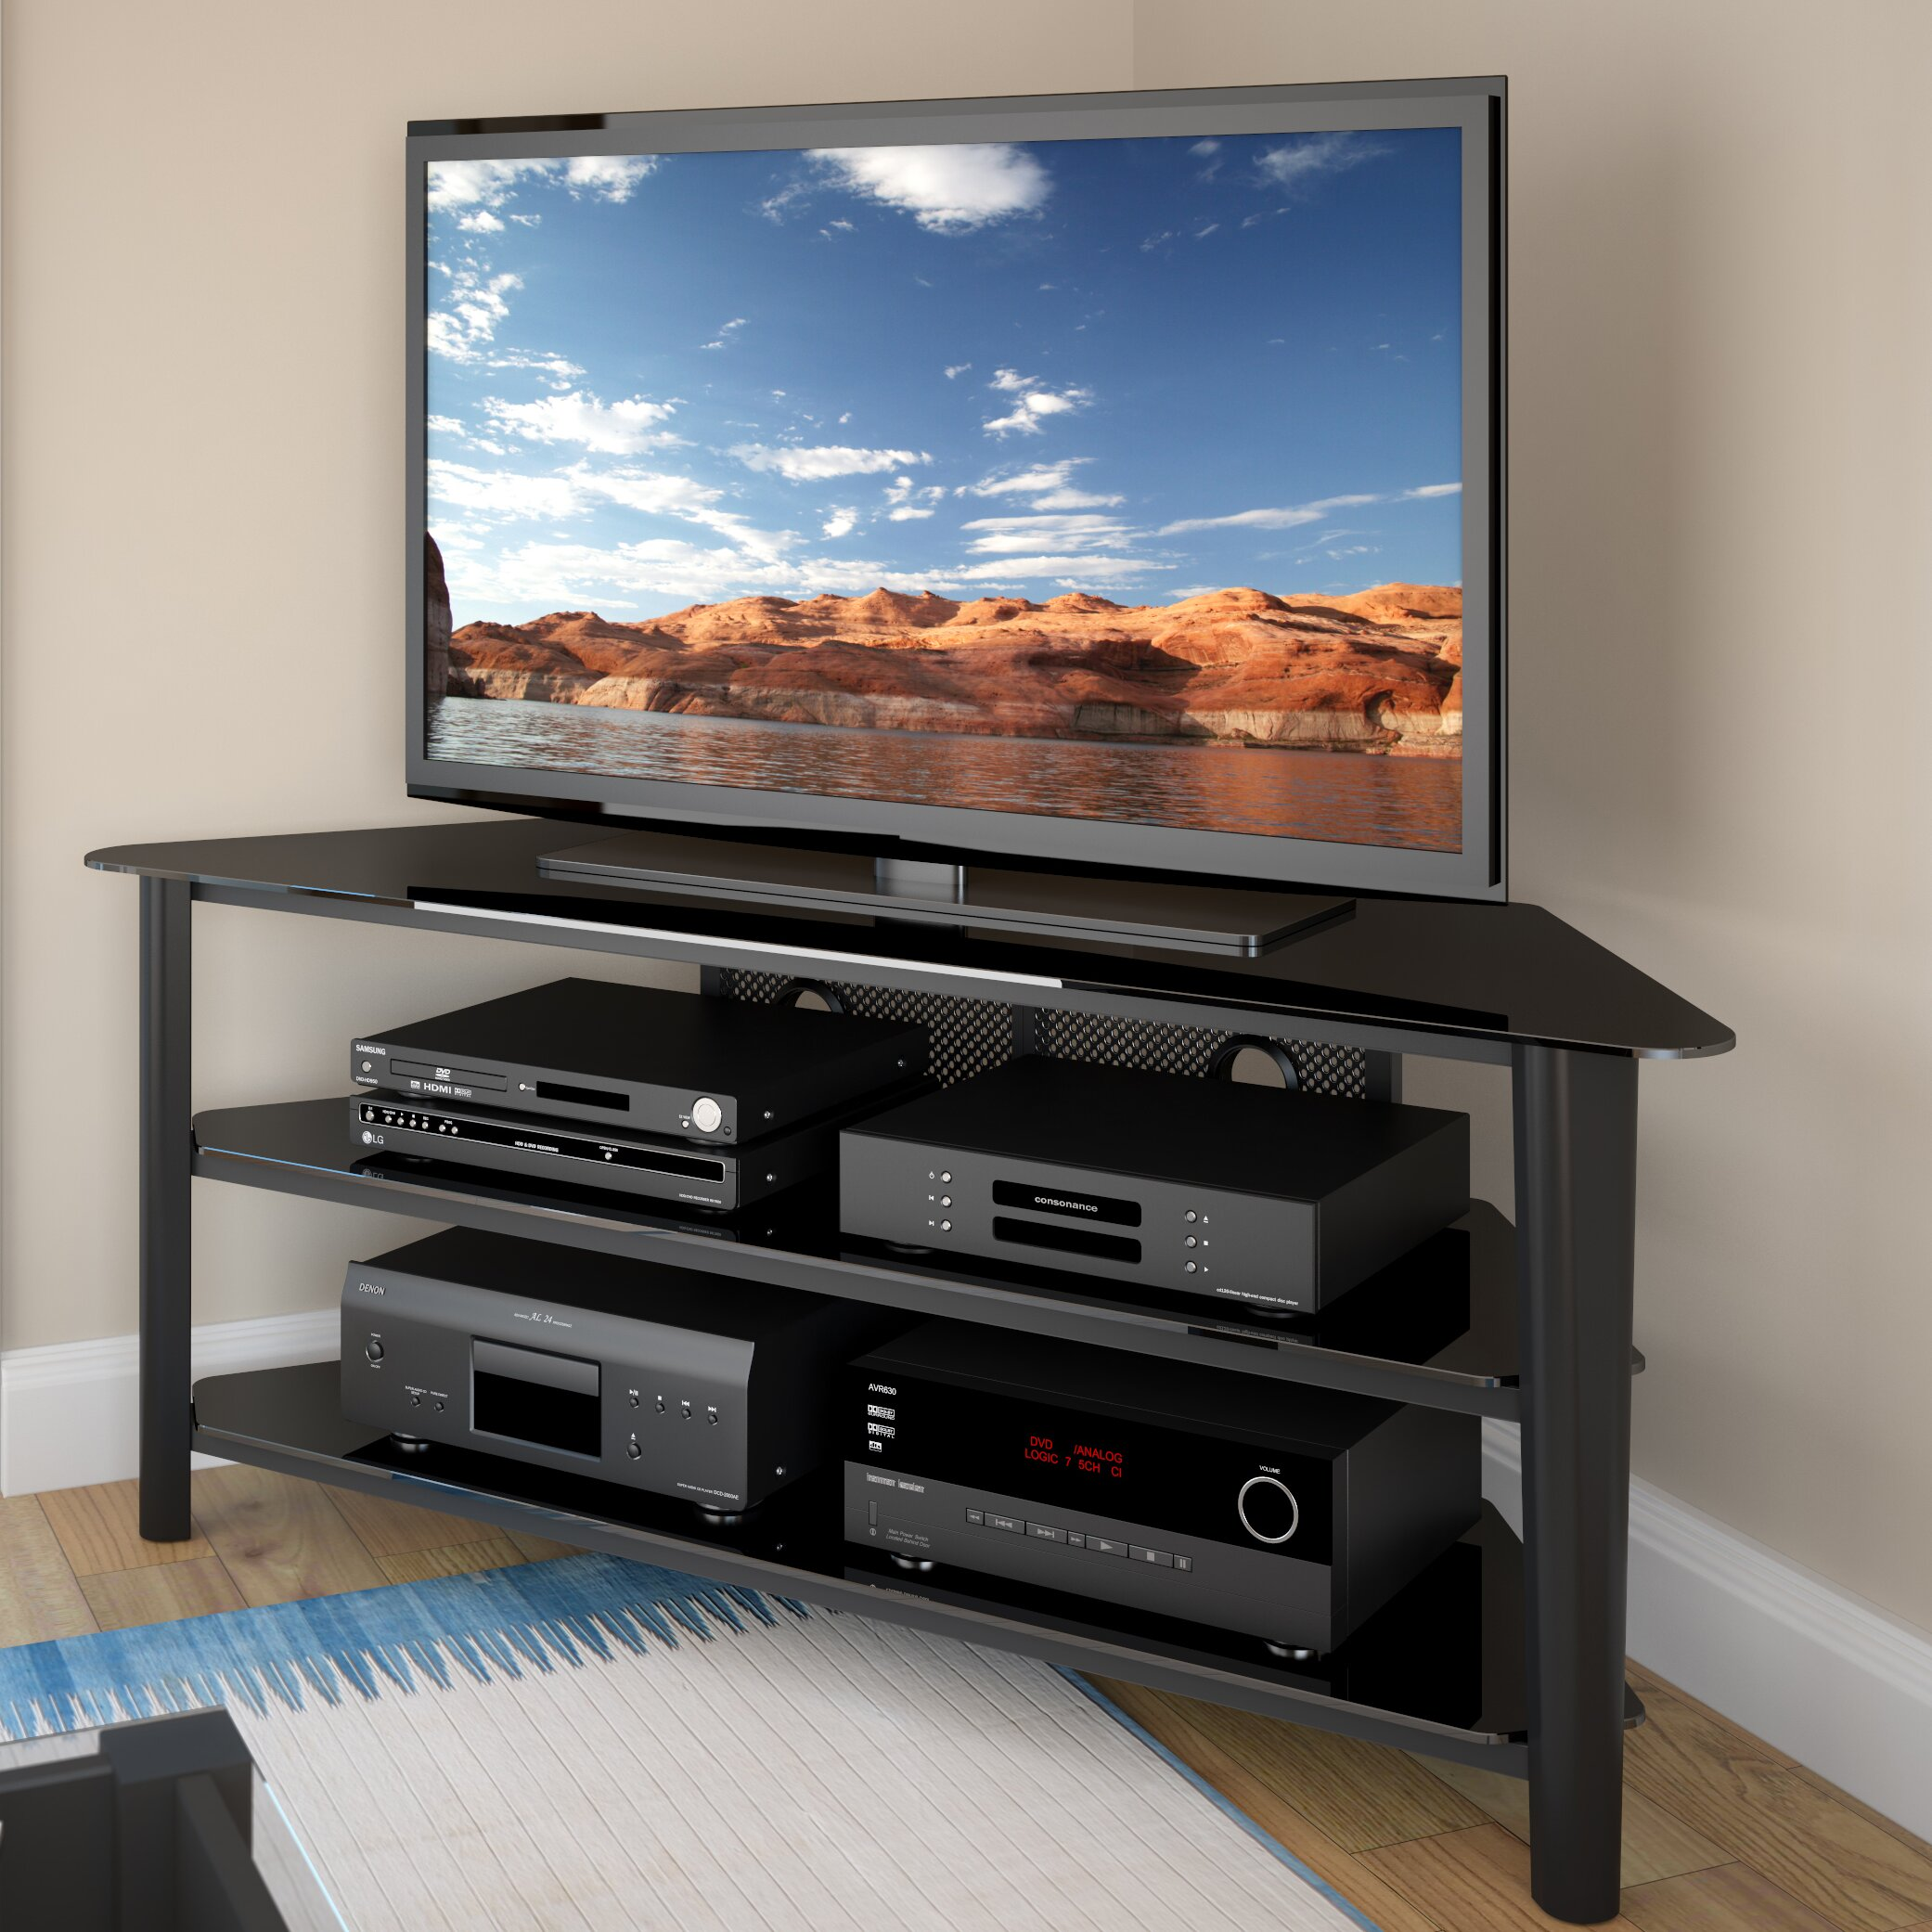 dcor design alturas corner tv stand reviews wayfair. Black Bedroom Furniture Sets. Home Design Ideas